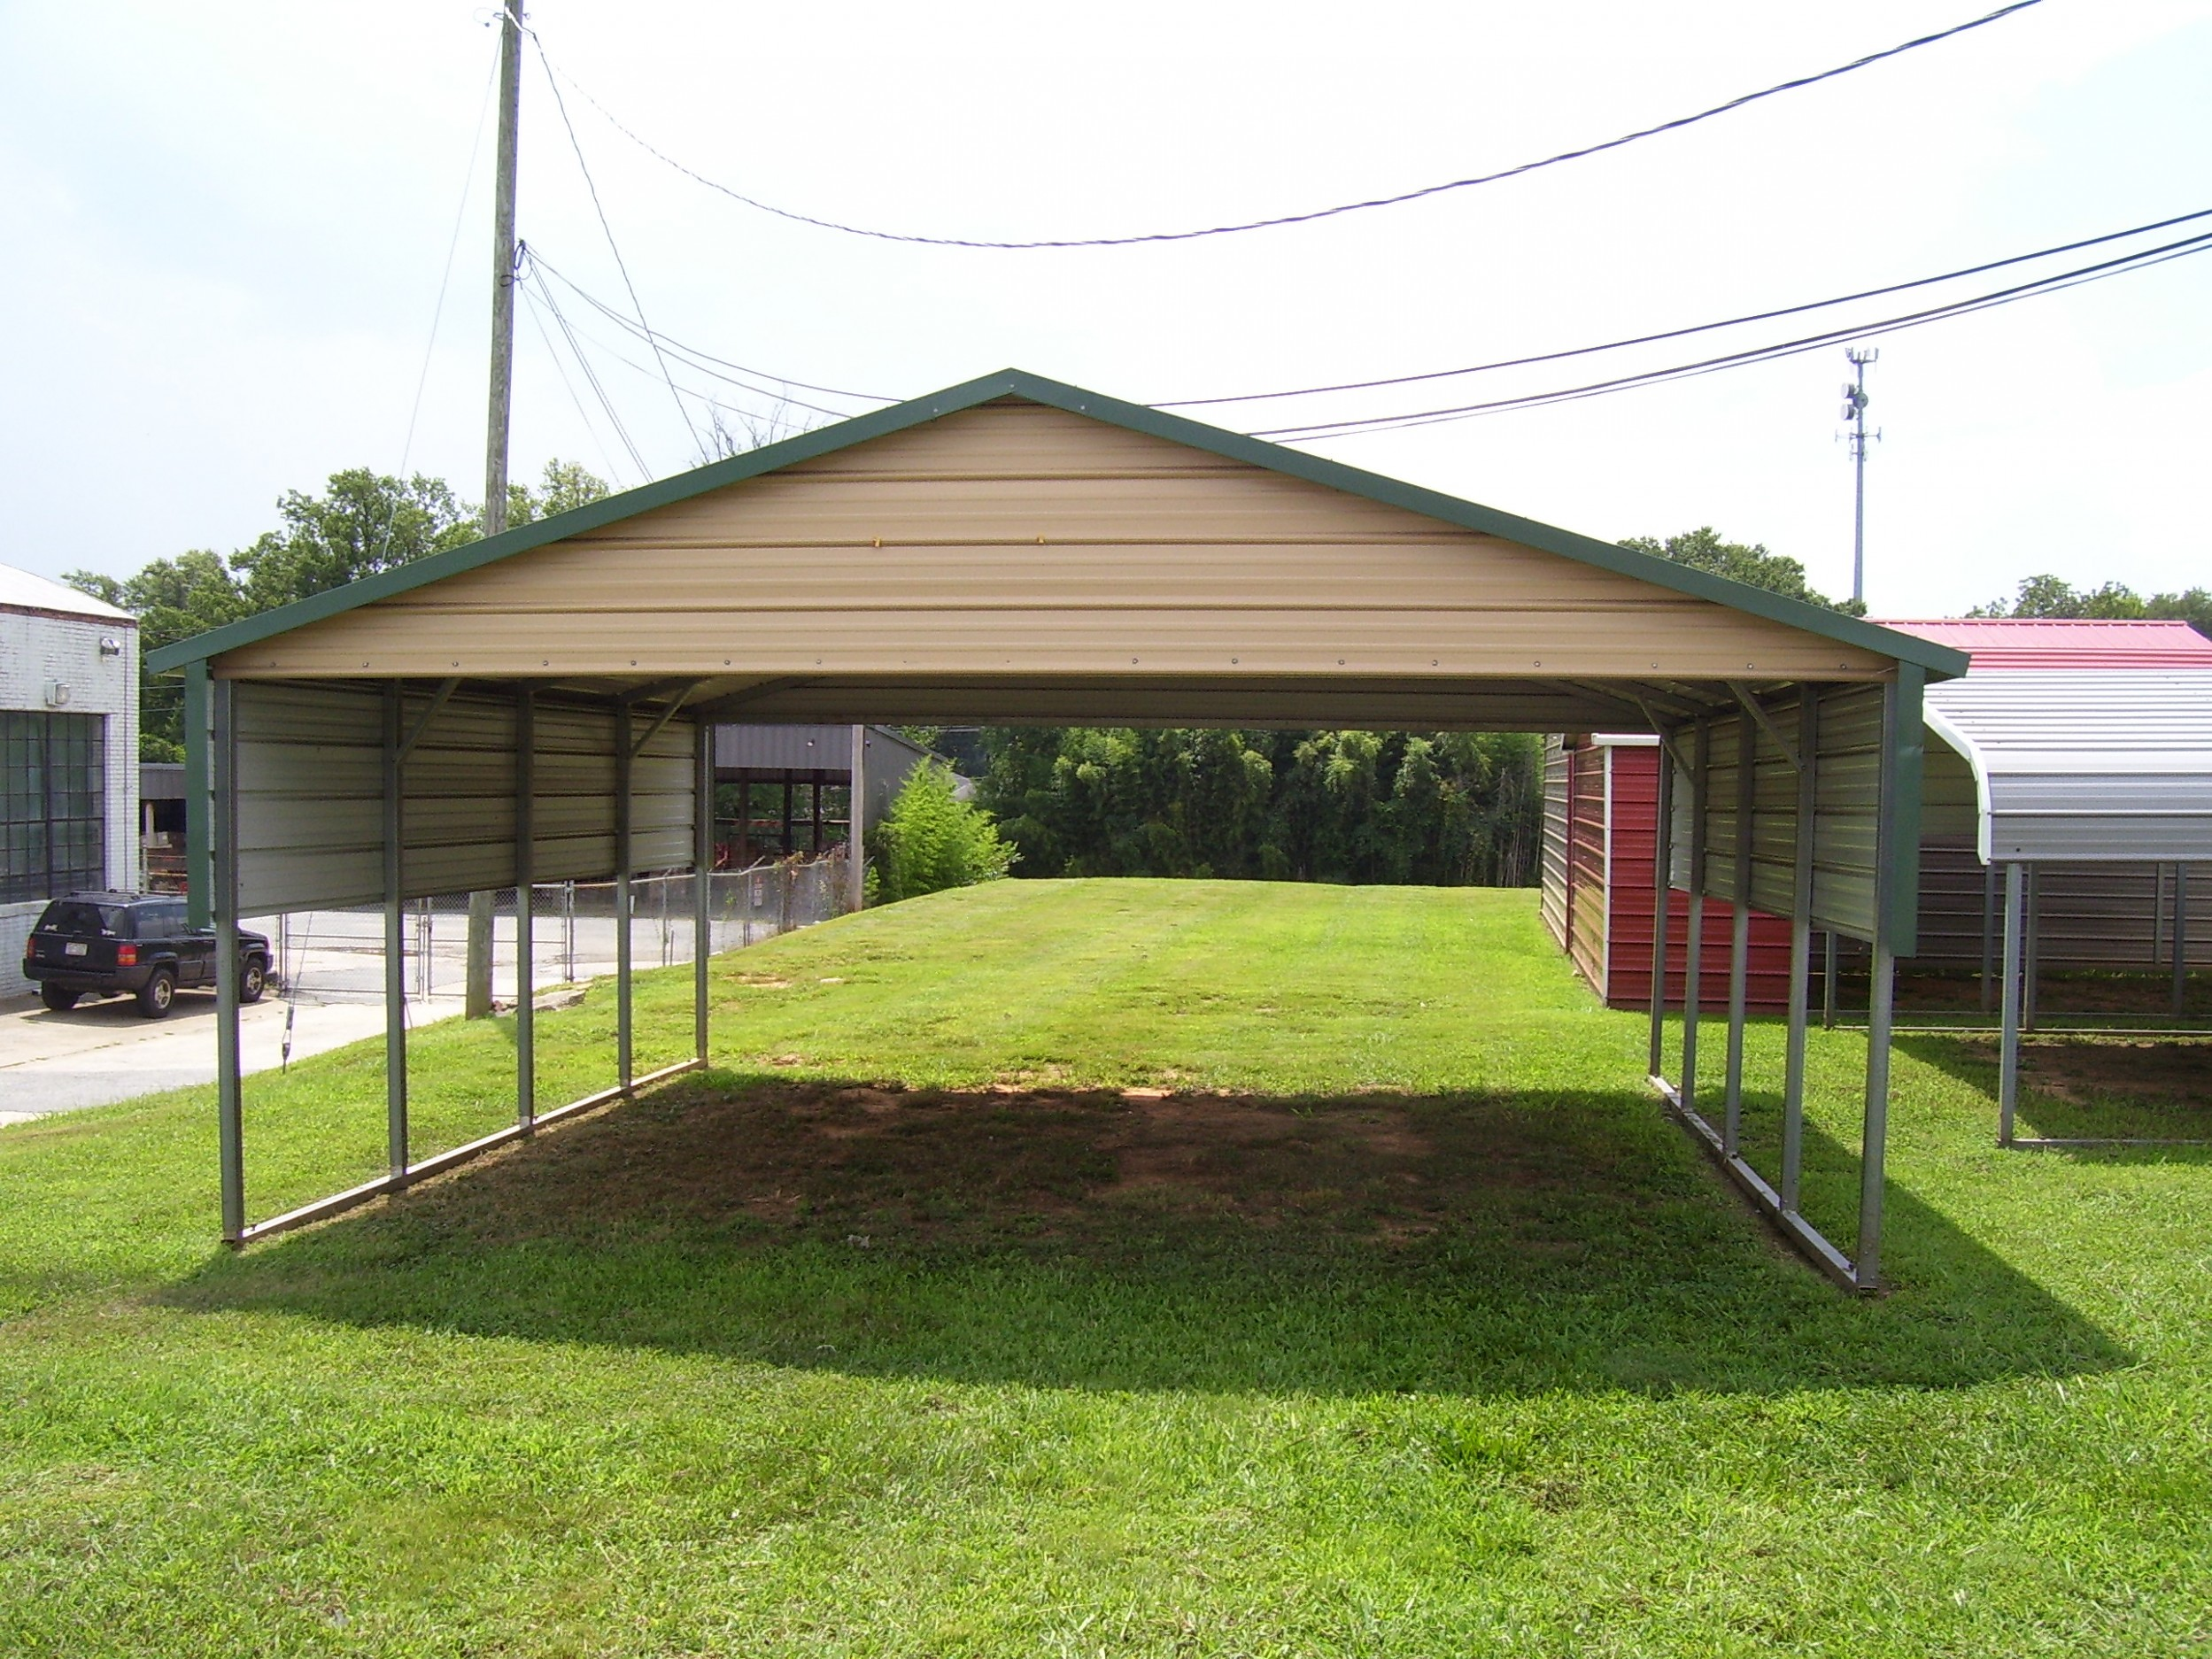 Seven Things To Expect When Attending Carport Kits Texas | carport kits texas